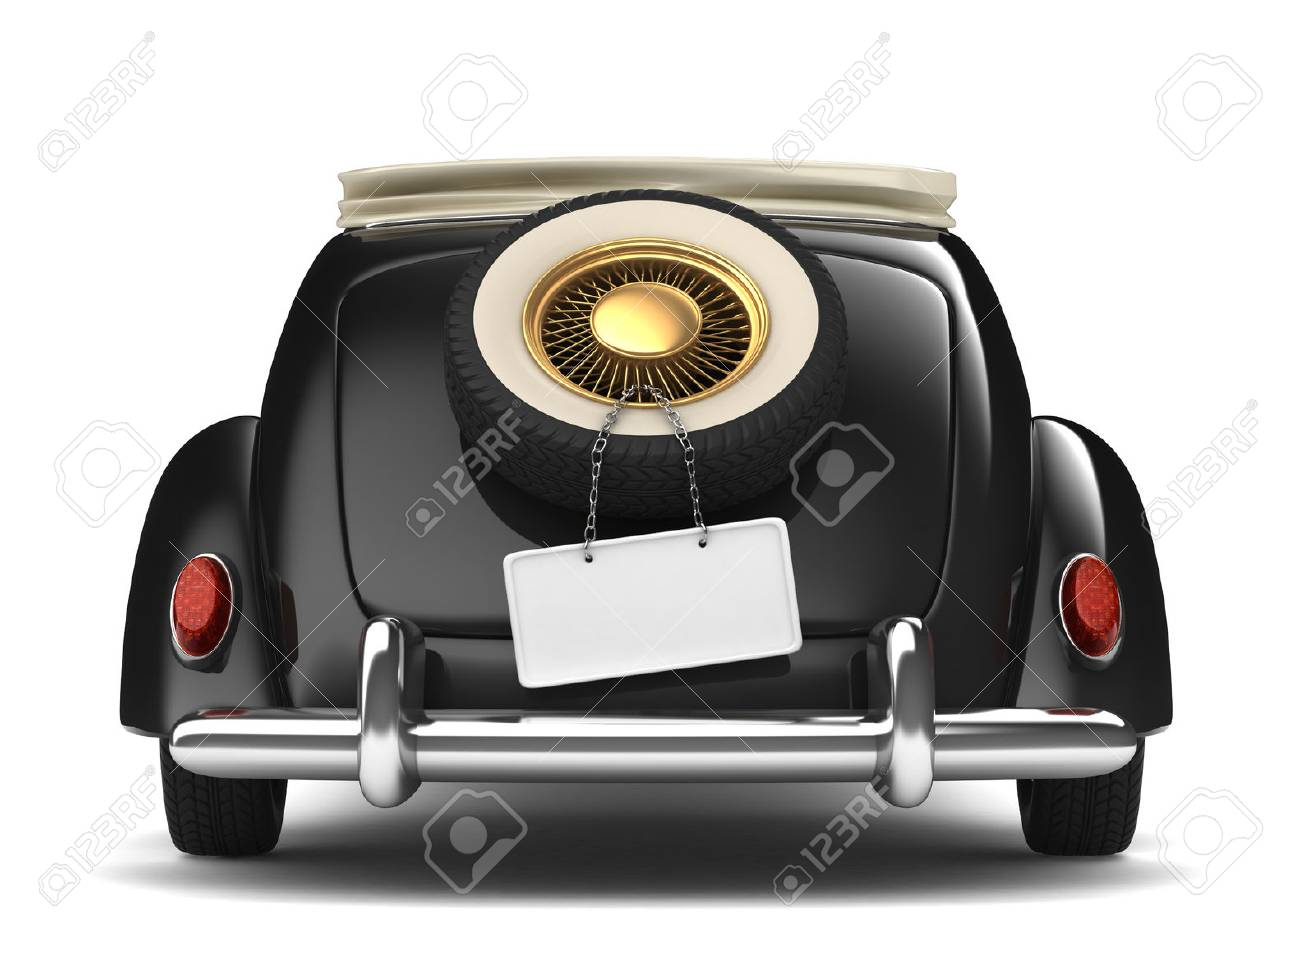 Vintage Black Bridal Car Stock Photo, Picture And Royalty Free Image ...